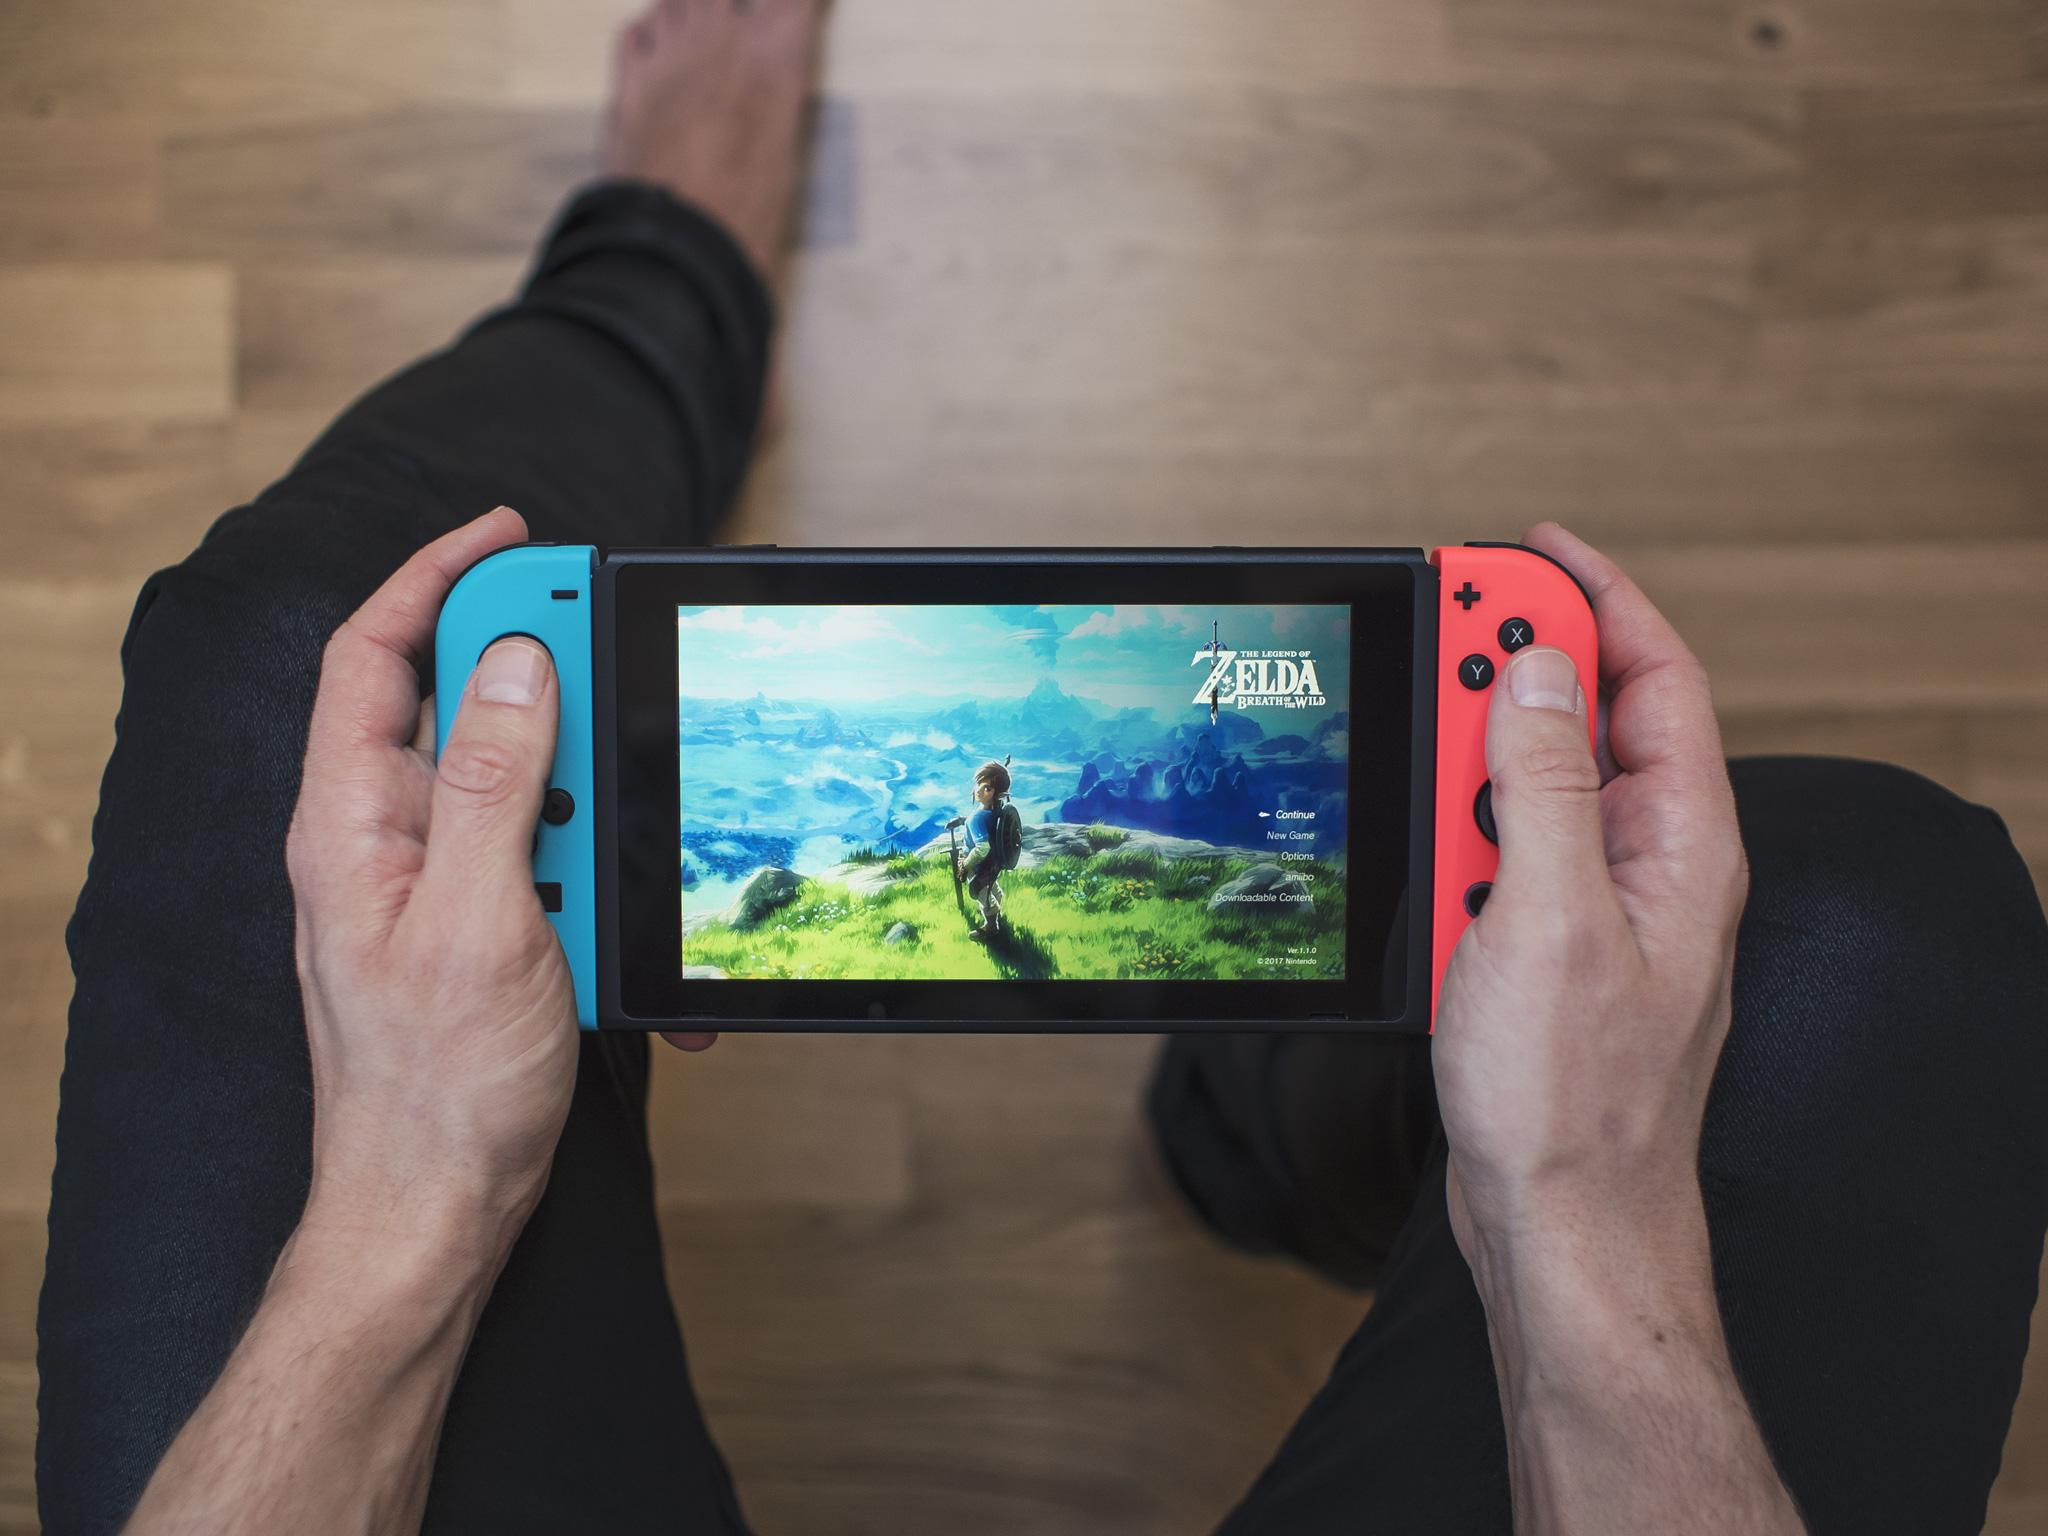 Nintendo Switch YouTube App Release Date Could Be About to Arrive, Latest Leaks Suggest